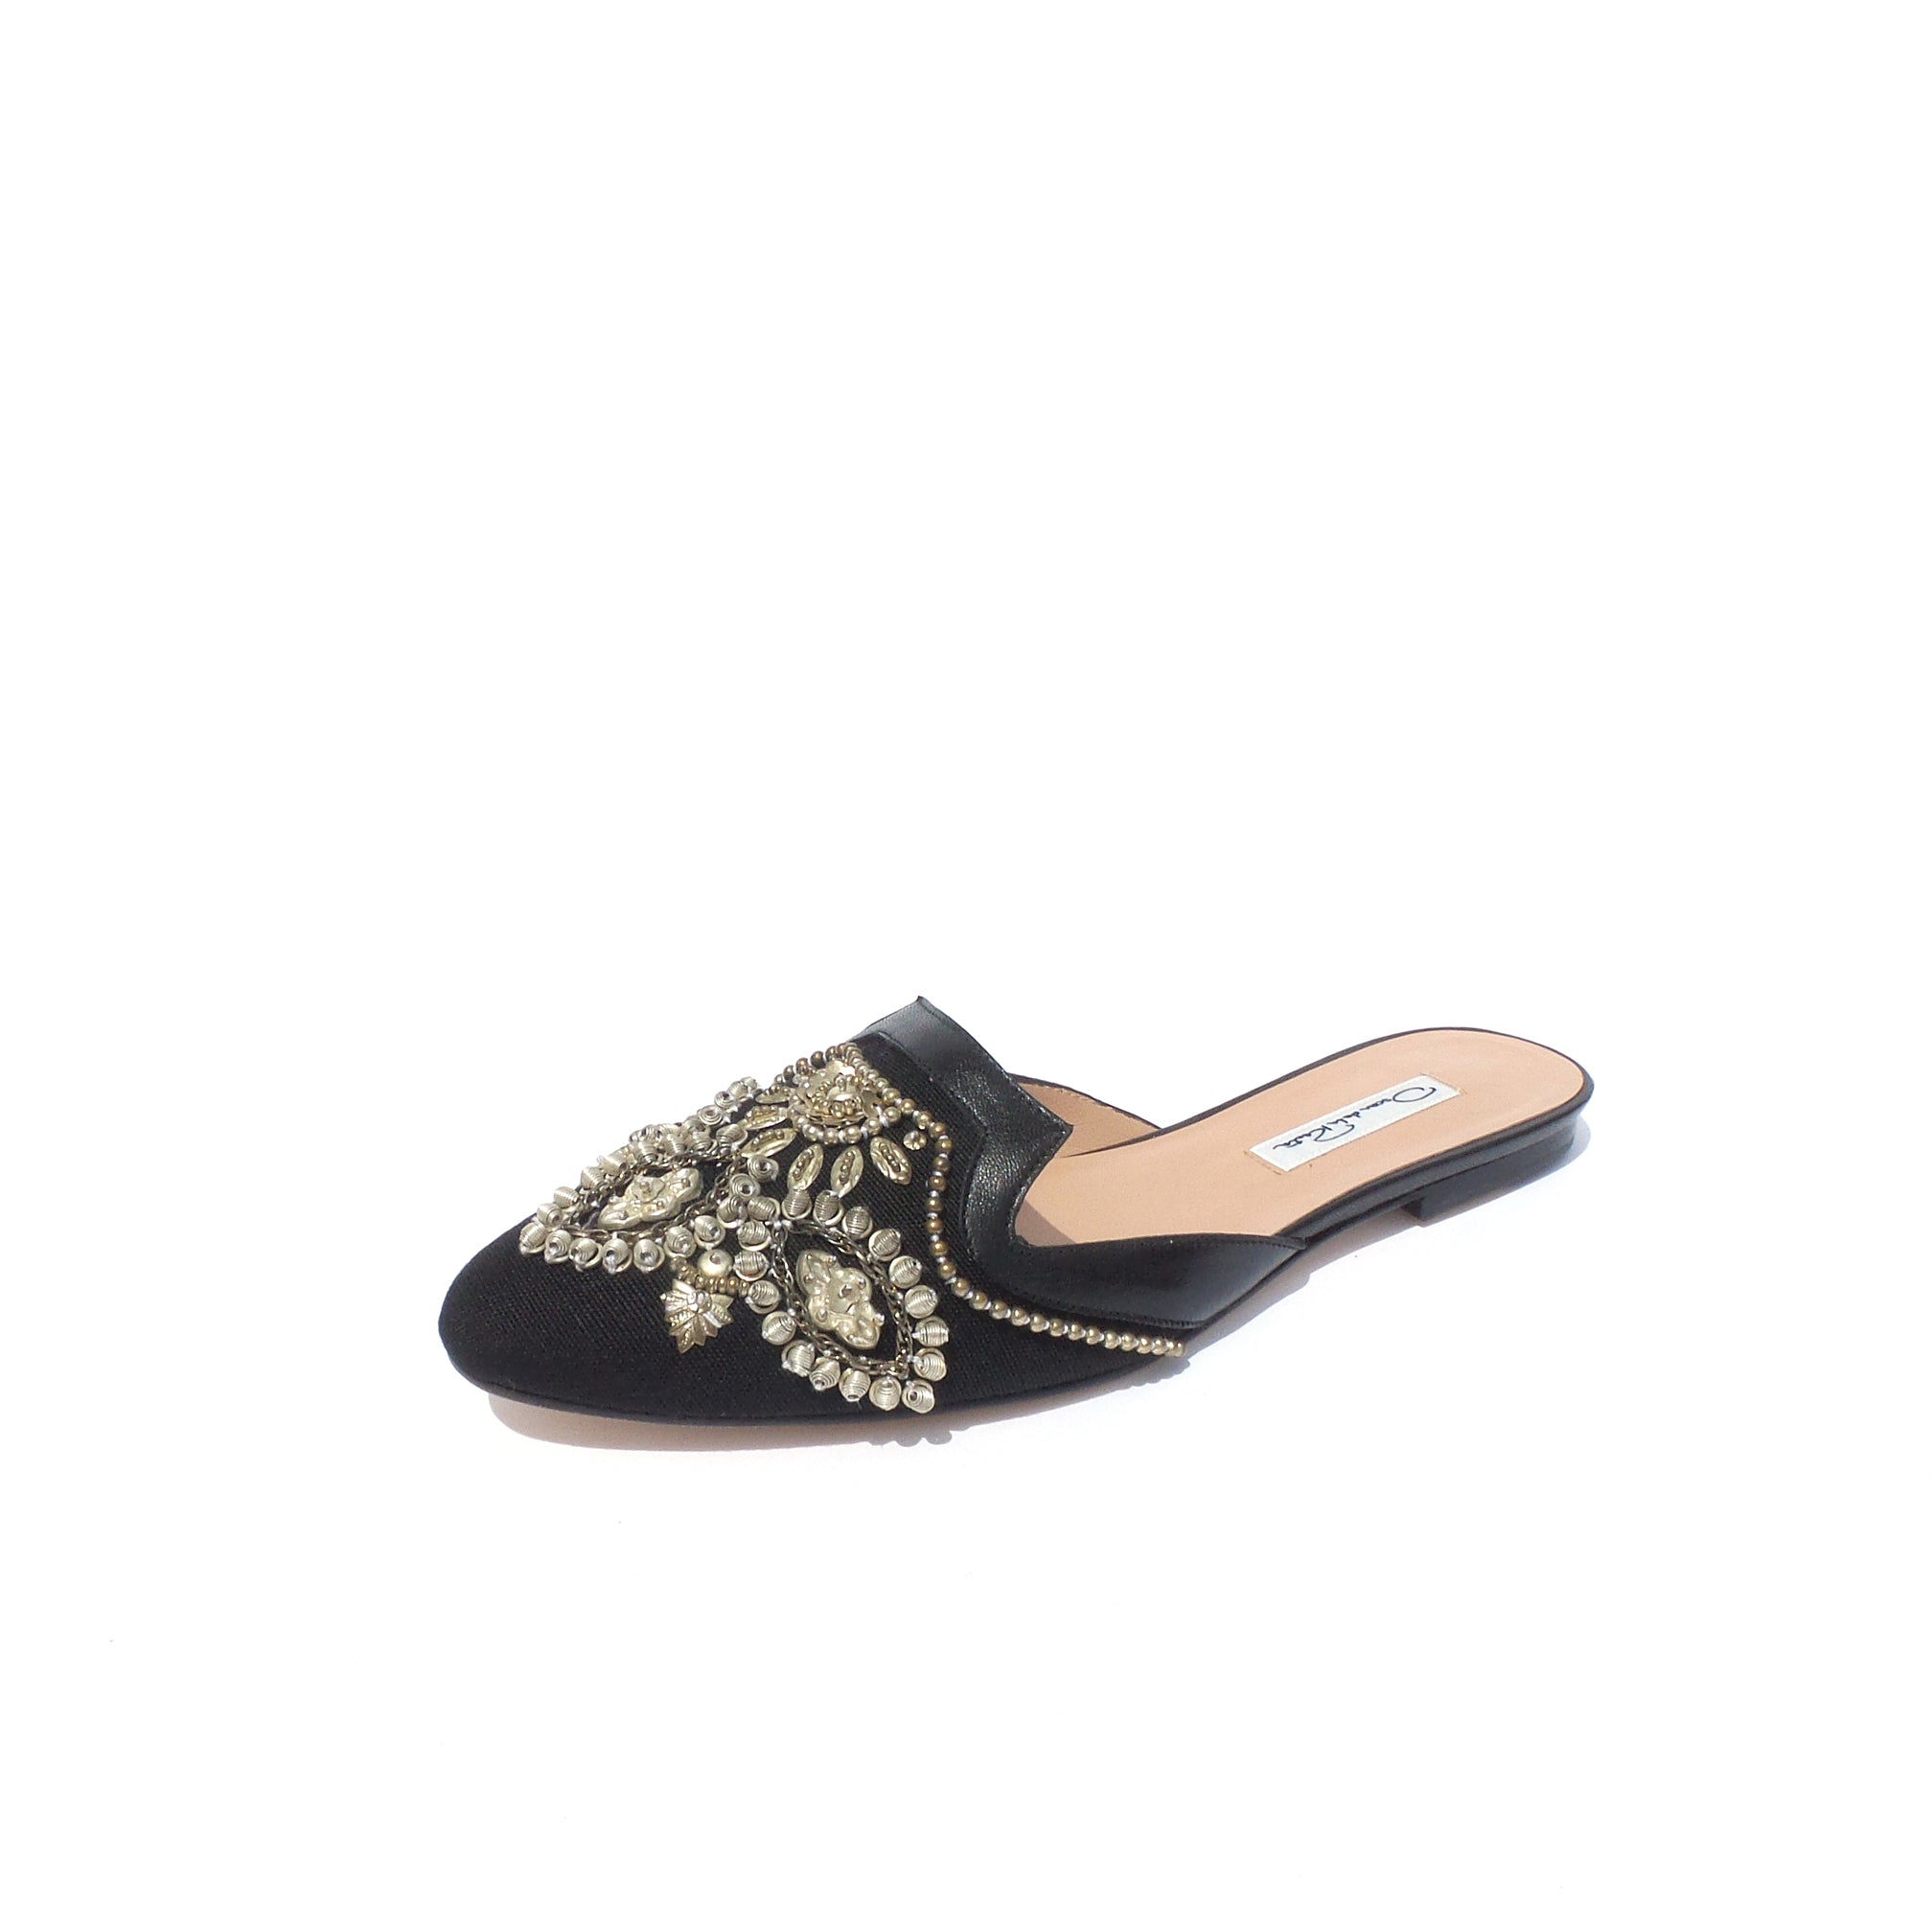 'Sold' $690 OSCAR DE LA RENTA Black Leather Embellished Canvas Spanish Mule Slide Flats 38.5